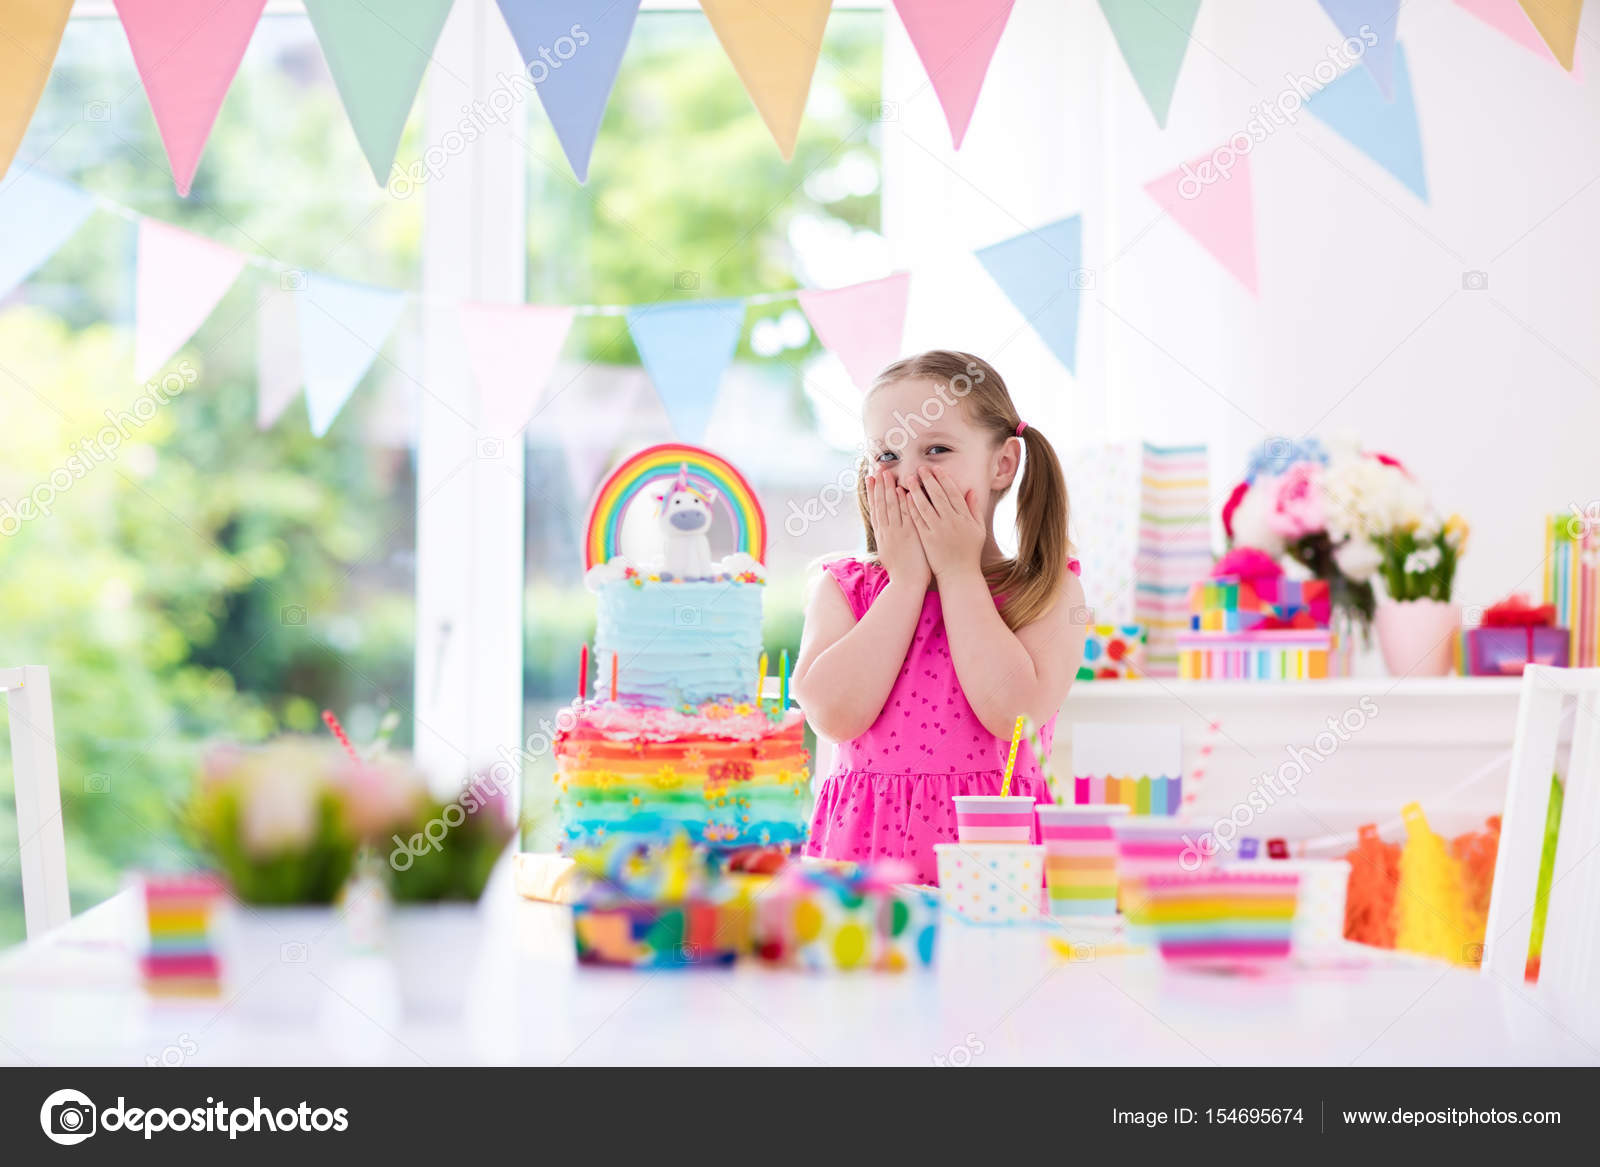 Little Kid Birthday Party Kids Birthday Party Little Girl With Cake Stock Photo